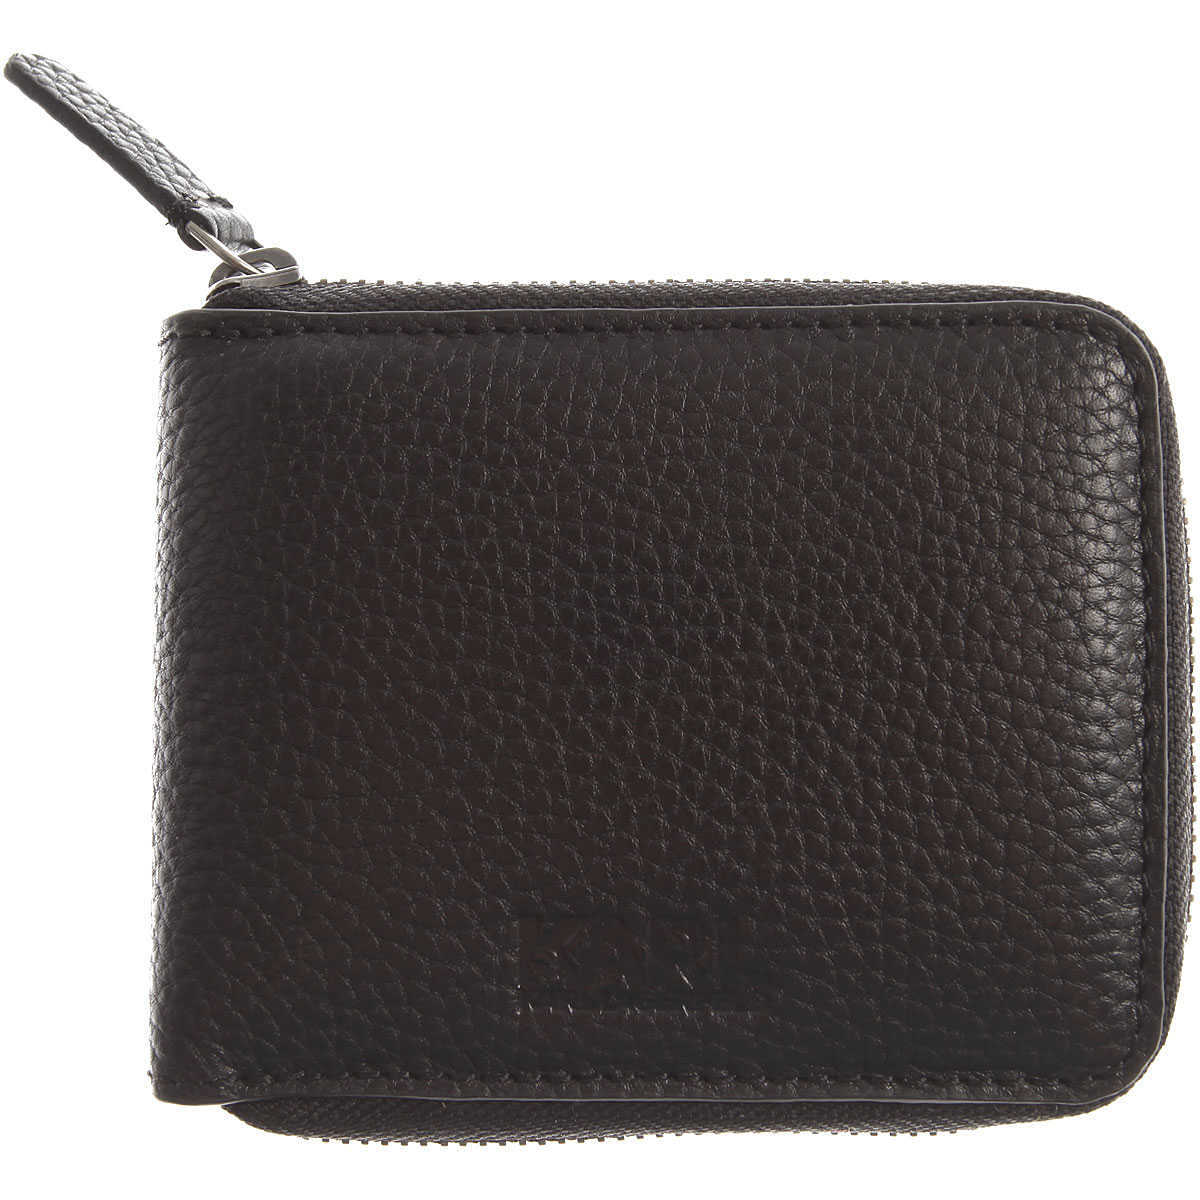 Karl Lagerfeld Wallet for Men On Sale Black DK - GOOFASH - Mens WALLETS